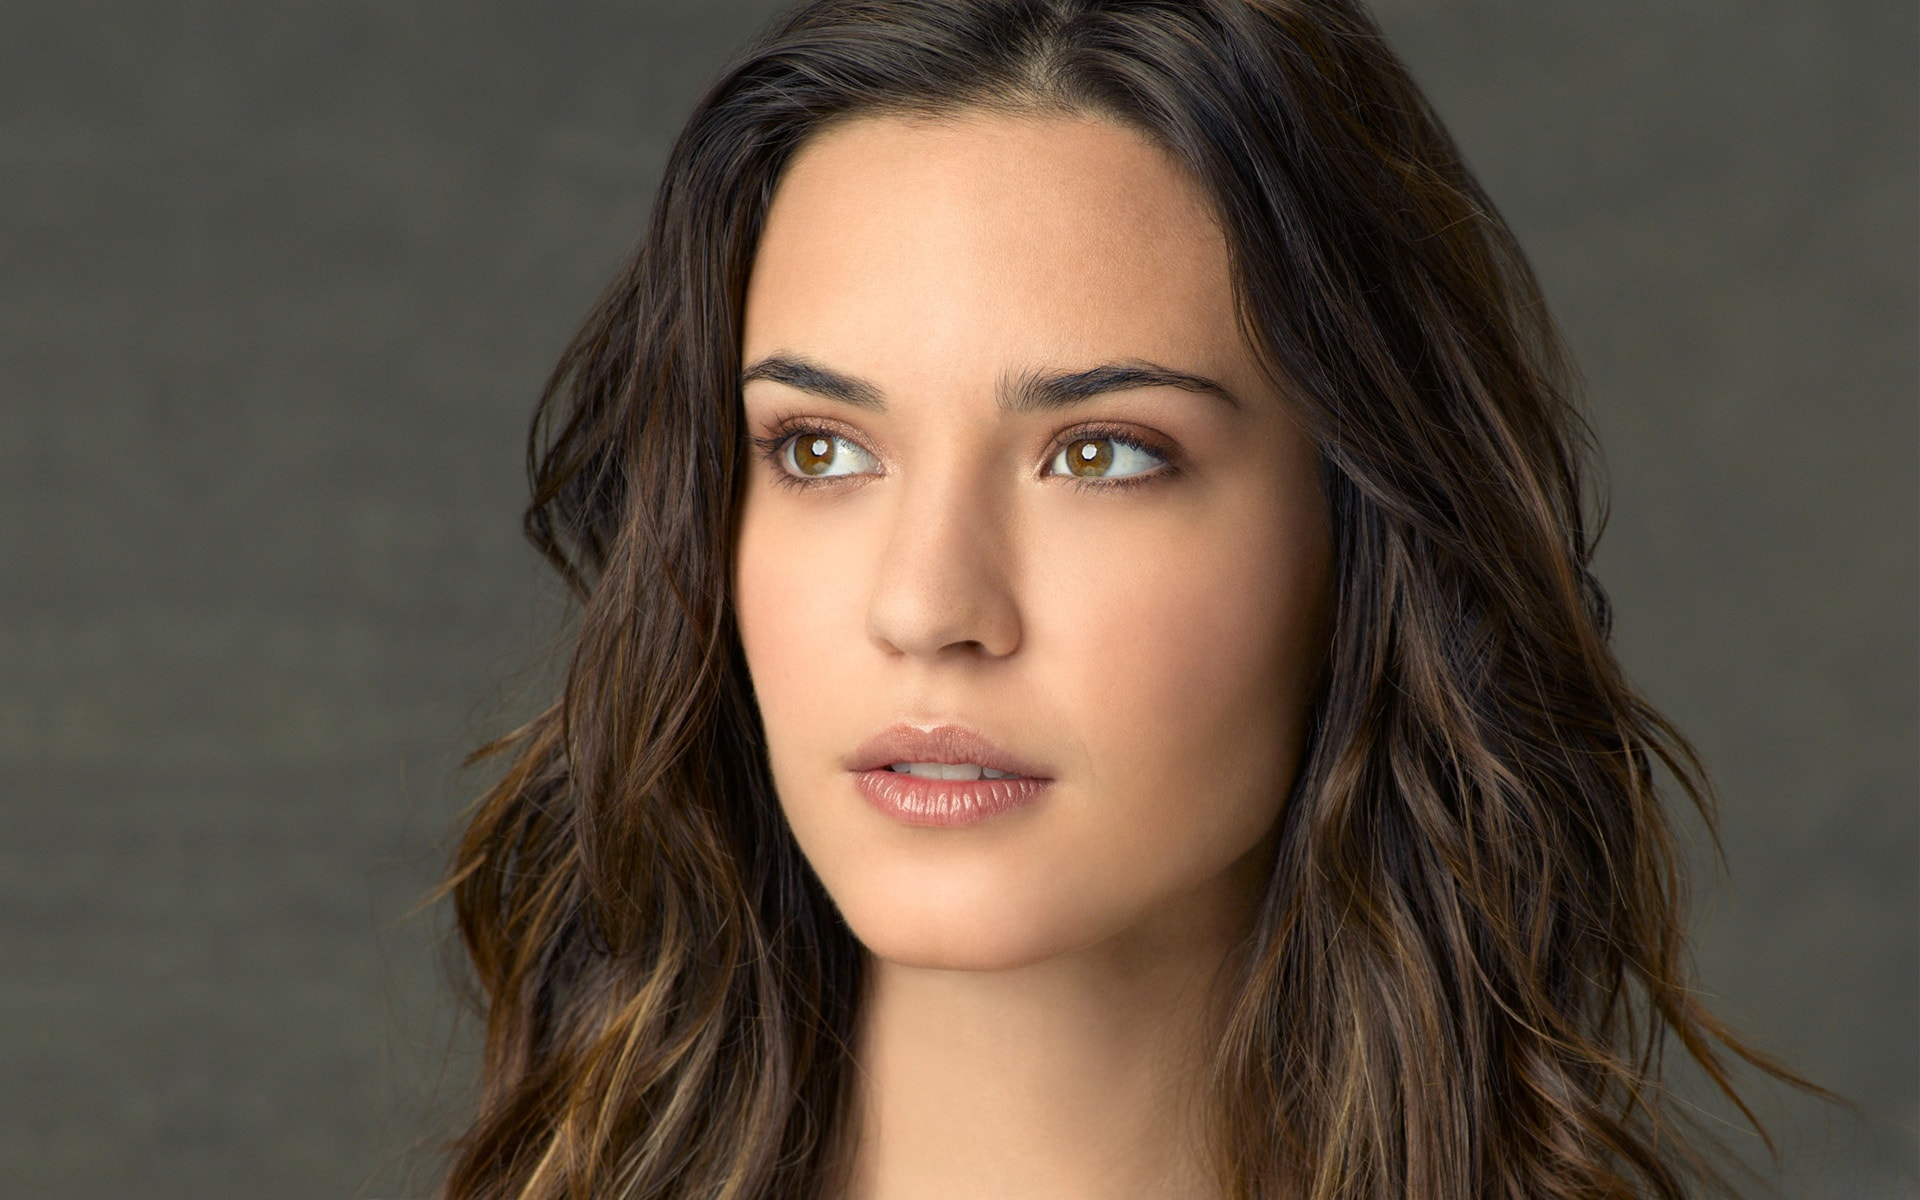 1920x1200 - Odette Annable Wallpapers 24